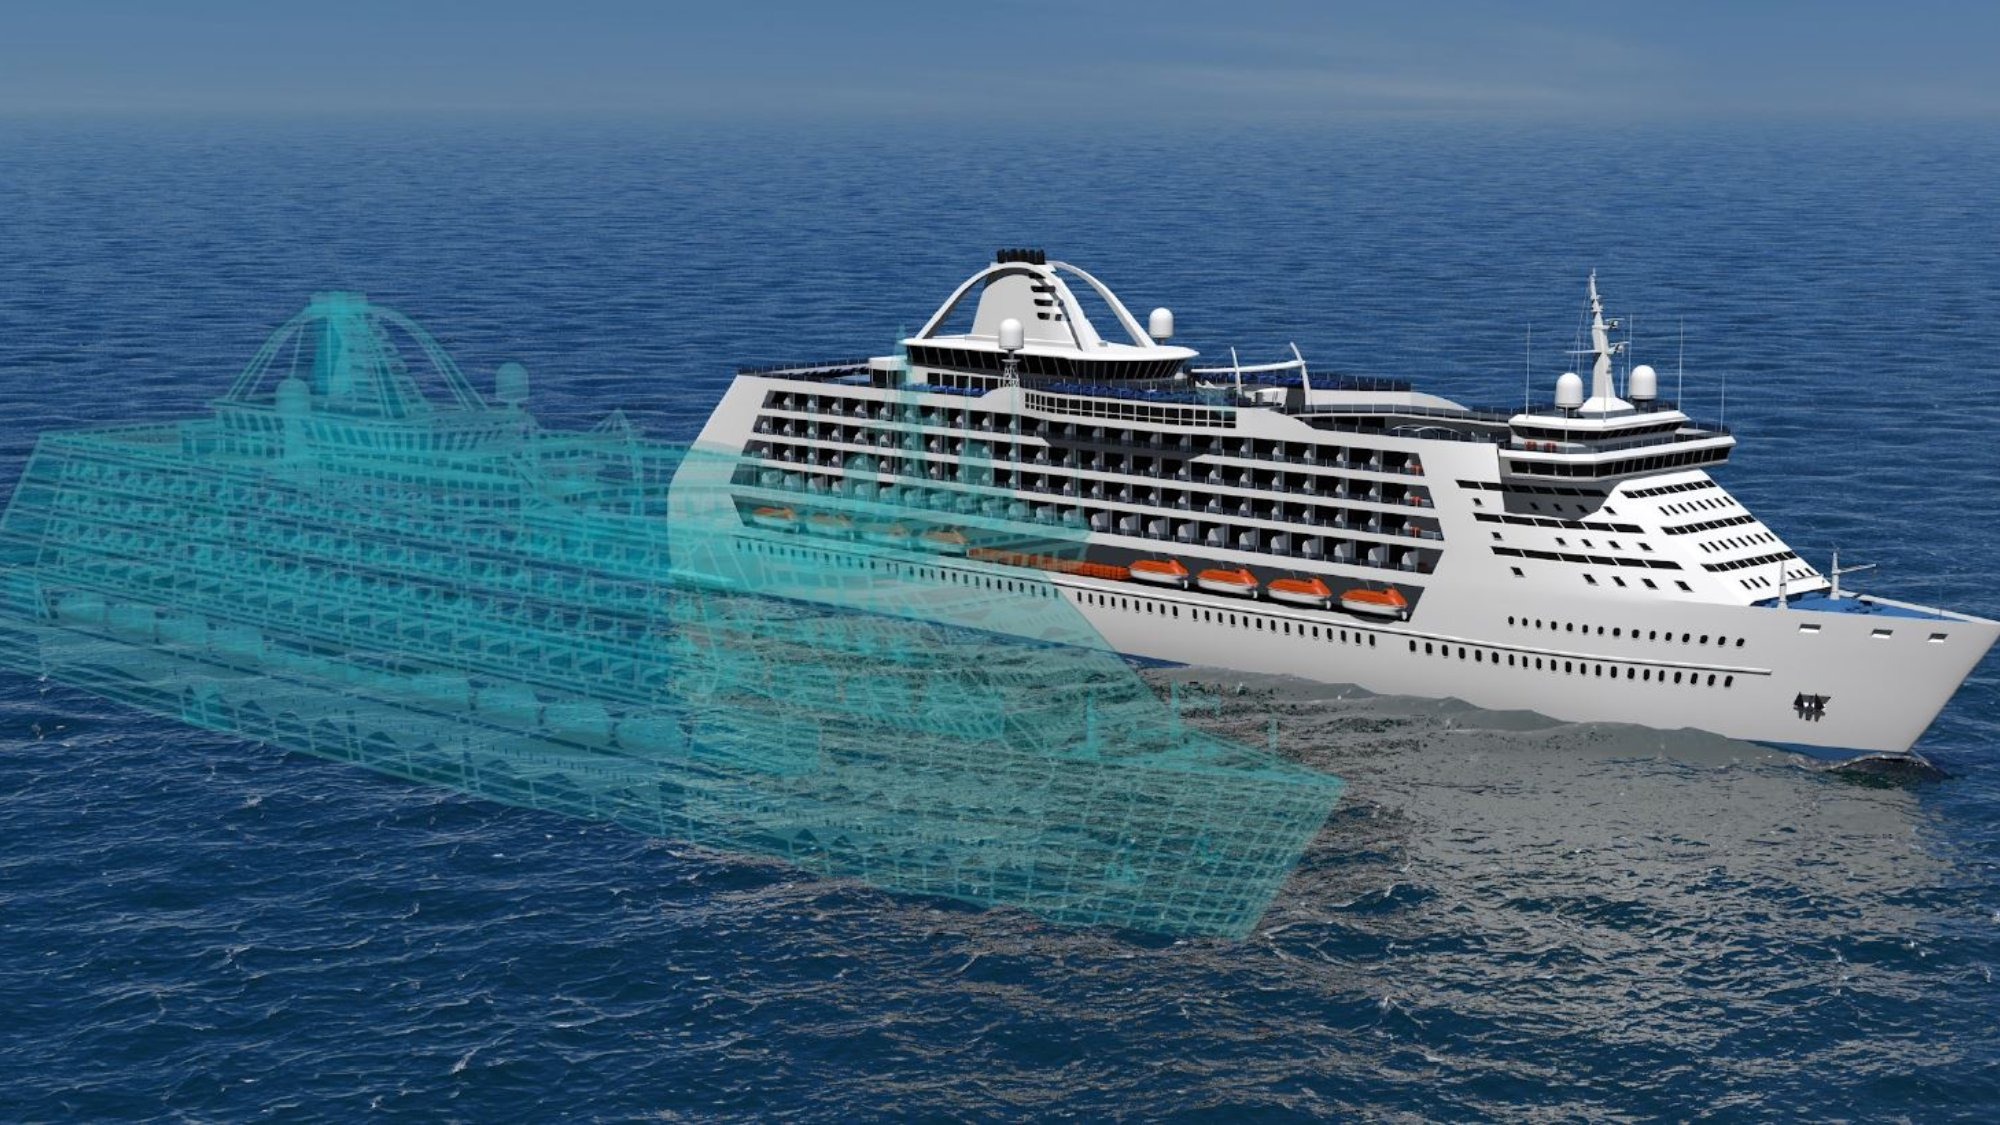 LUT University is already developing a digital twin for a waste-heat recovery system for cruise ships.